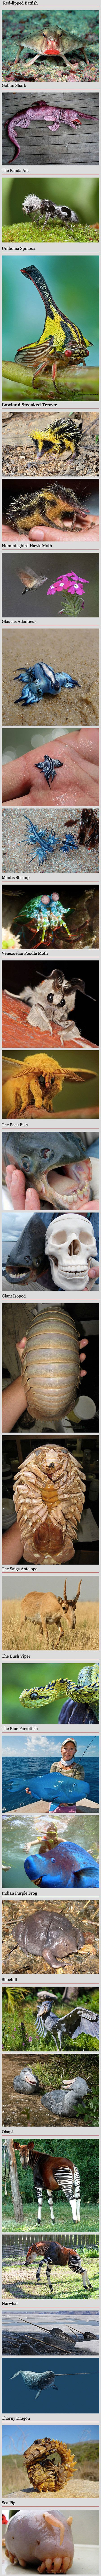 We've rounded up some bizarre and crazy animals you never knew existed. I knew about the goblin shark, the mantis shrimp, the bush viper, the narwhal, and the thorny dragon! What about you? -Grace